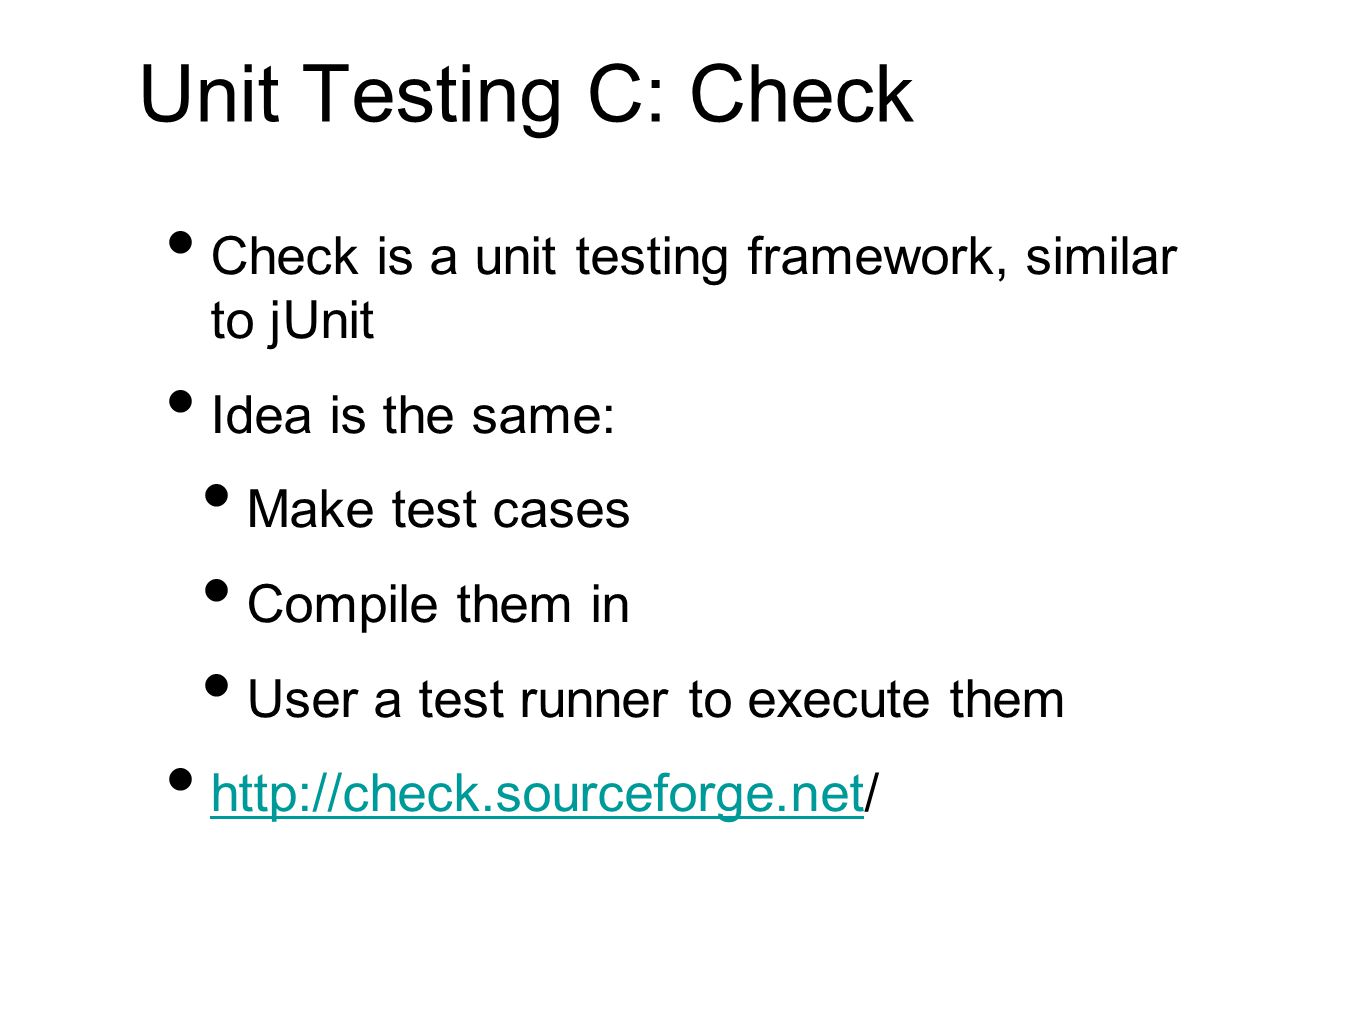 Unit Testing C: Check Check is a unit testing framework, similar to jUnit Idea is the same: Make test cases Compile them in User a test runner to exec